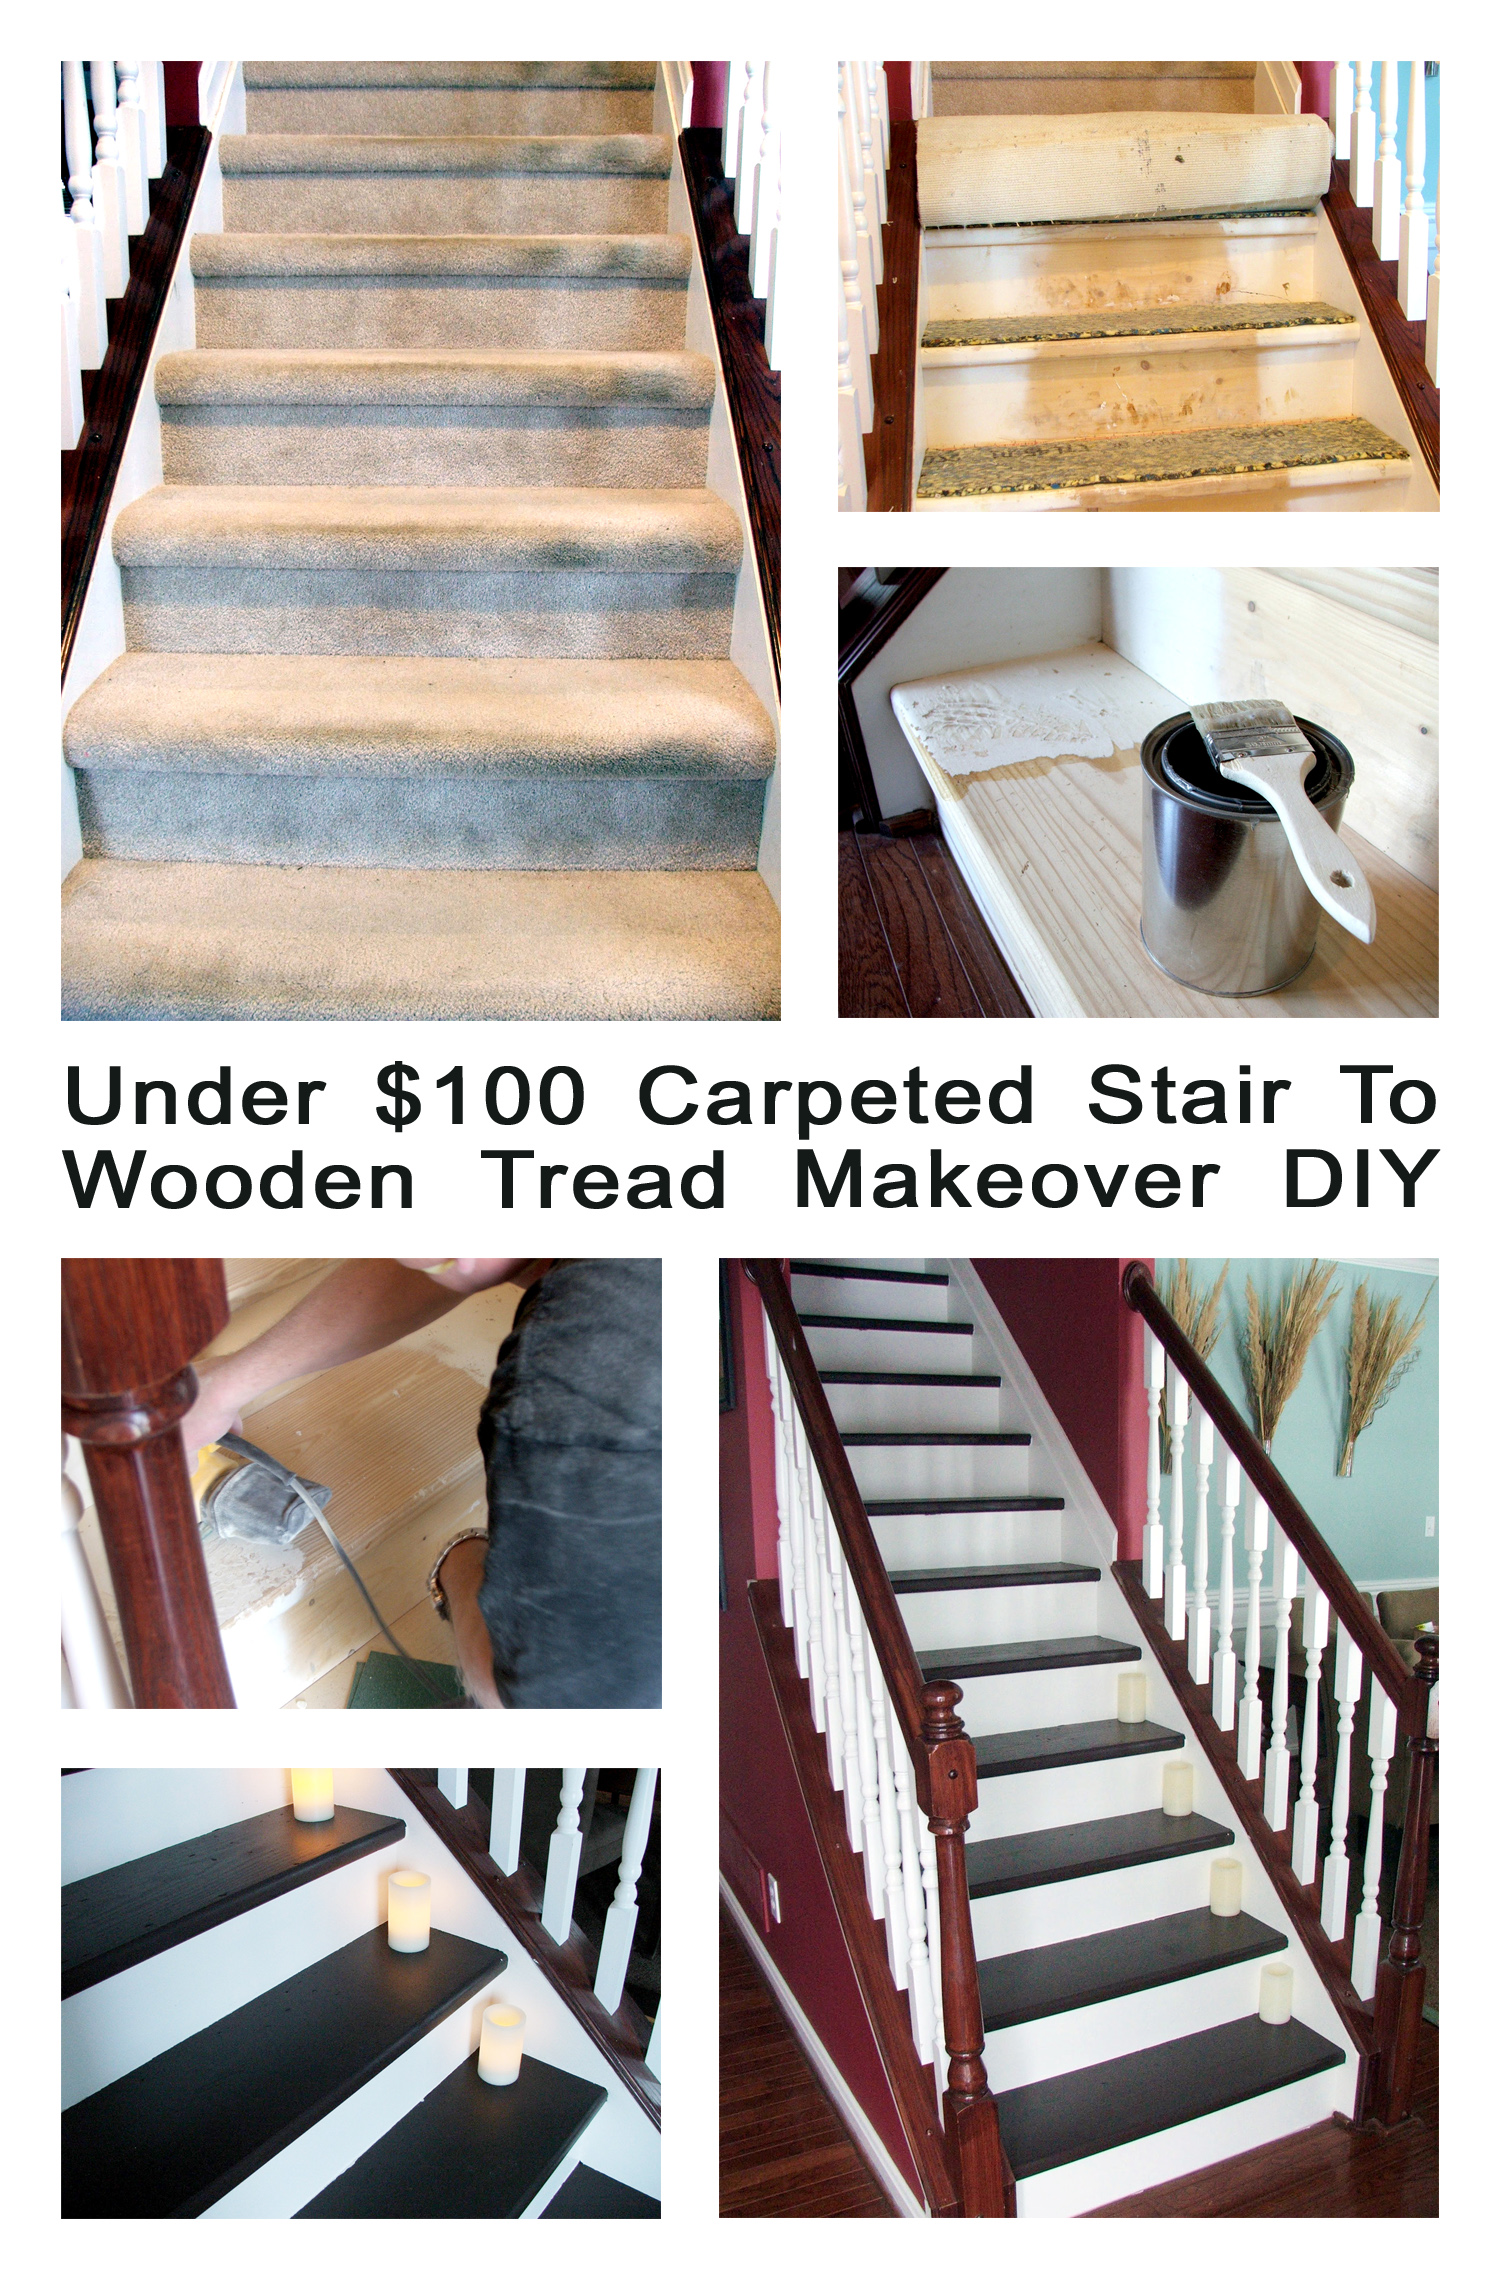 Under $100 Carpeted Stair To Wooden tread makeover DIY copy